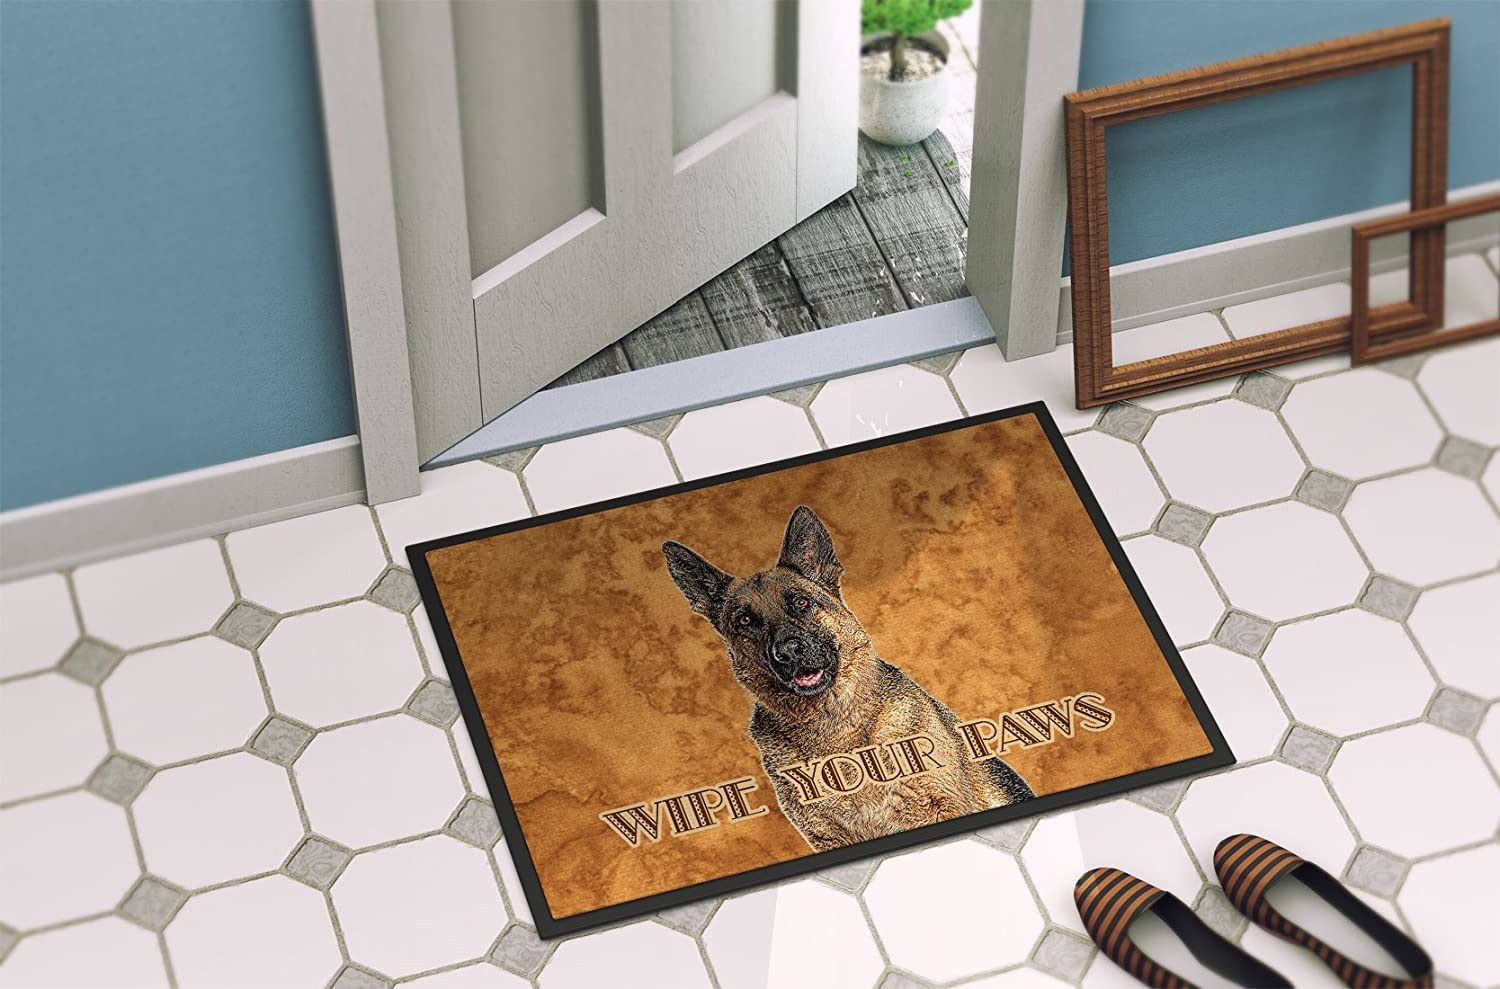 Caroline S Treasures Kj1222mat German Shepherd Wipe Your Paws Indoor Or Outdoor Mat 18x27 18h X 27w Multicolor Caroline S Treasures Home Kitchen